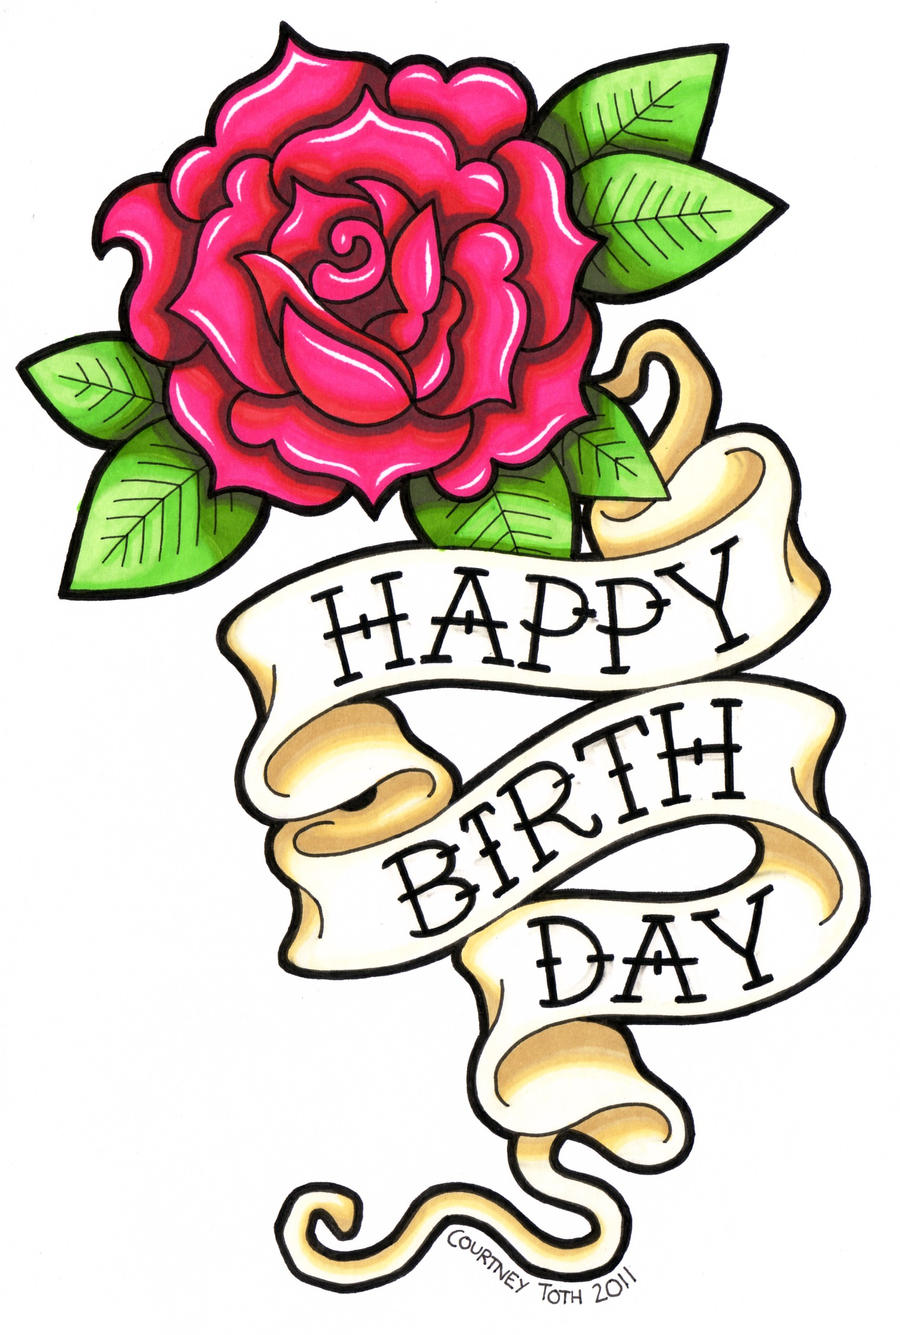 metalpeteyflower's deviantart gallery, Birthday card